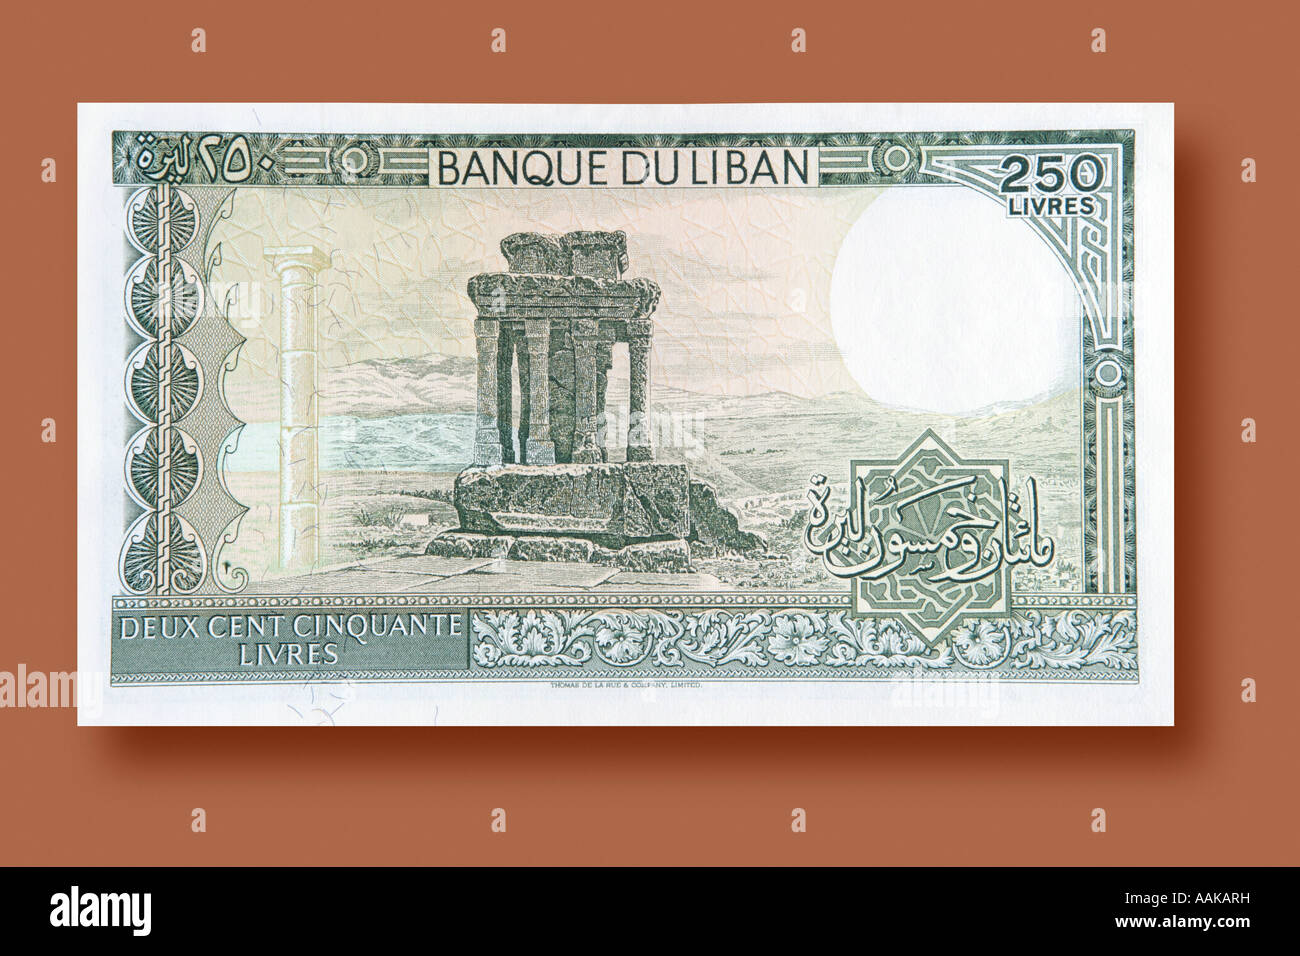 250 Livres paper money from Lebanon - Stock Image